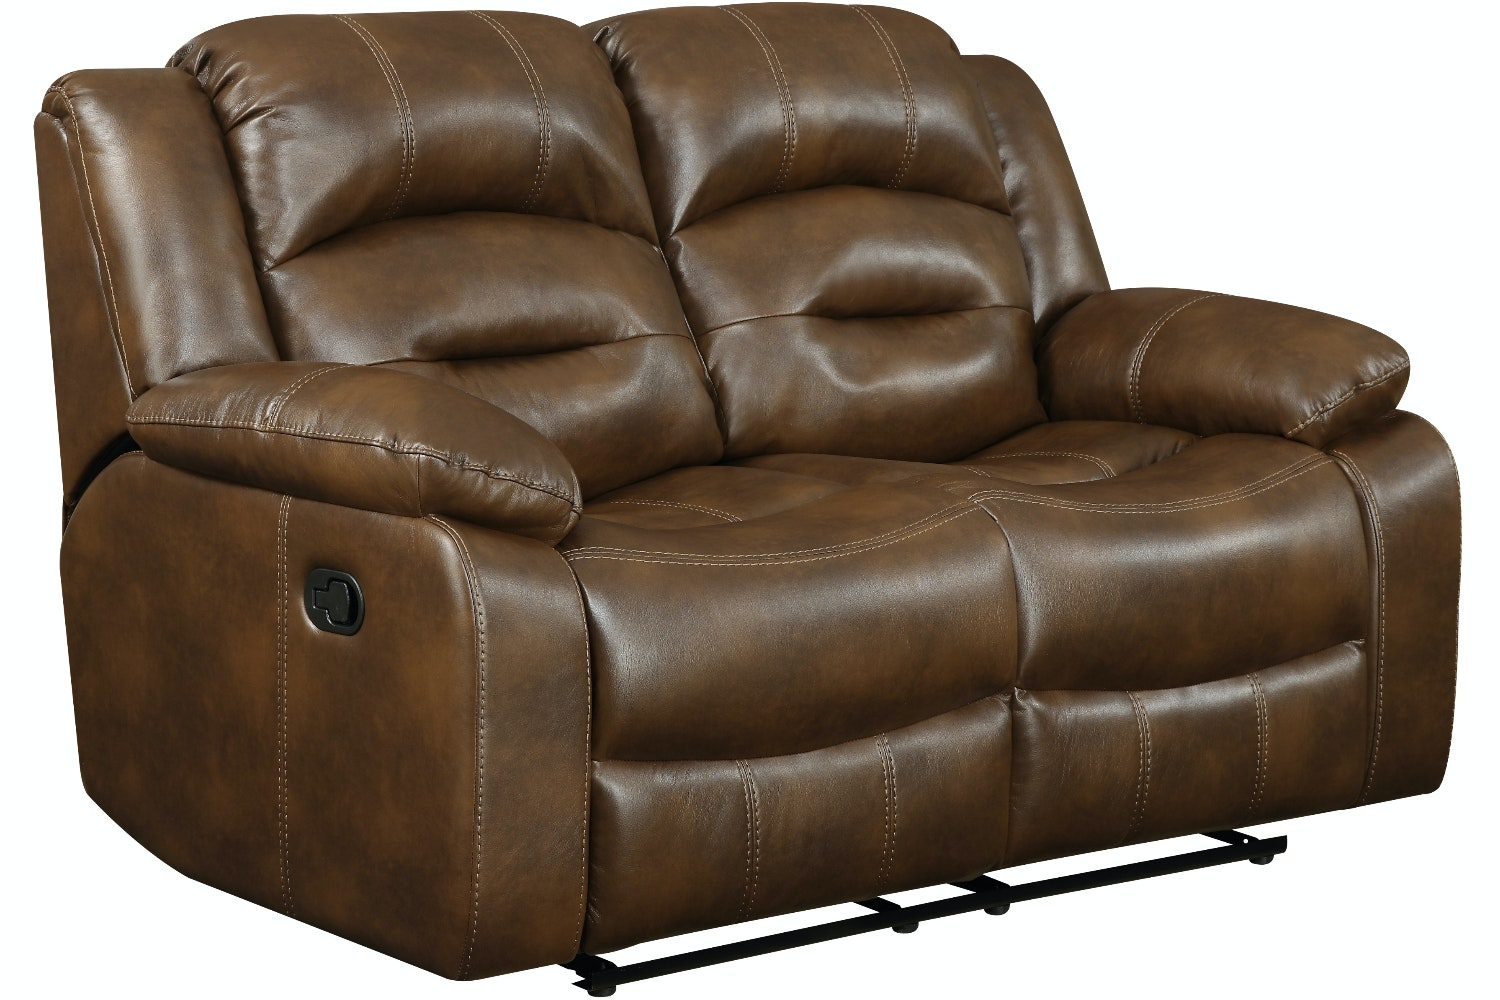 Hunter 2 Seater Sofa (Recliner)